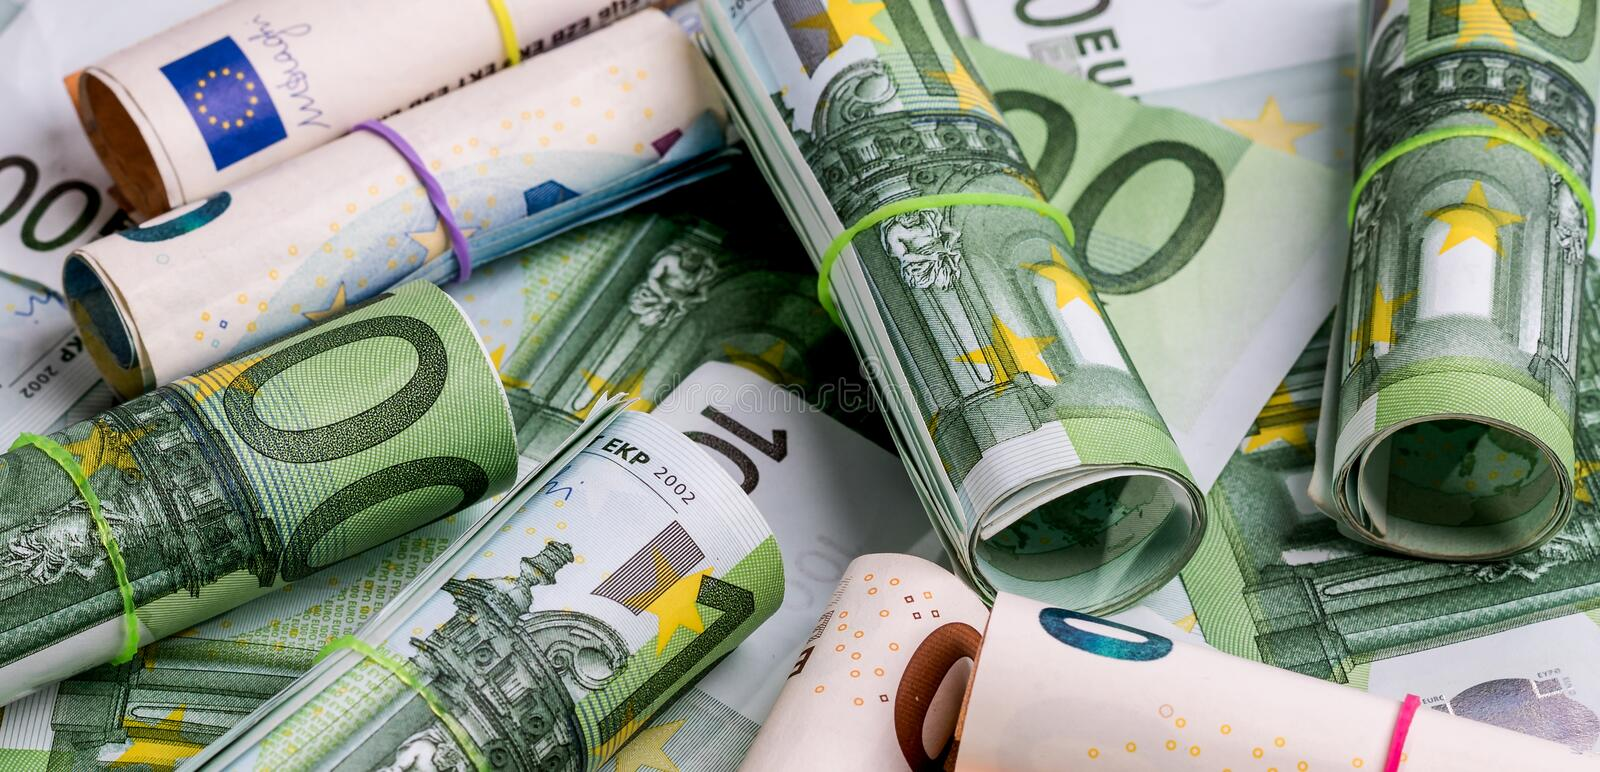 Euro banknotes on white background several hundred euros detail royalty free stock photo